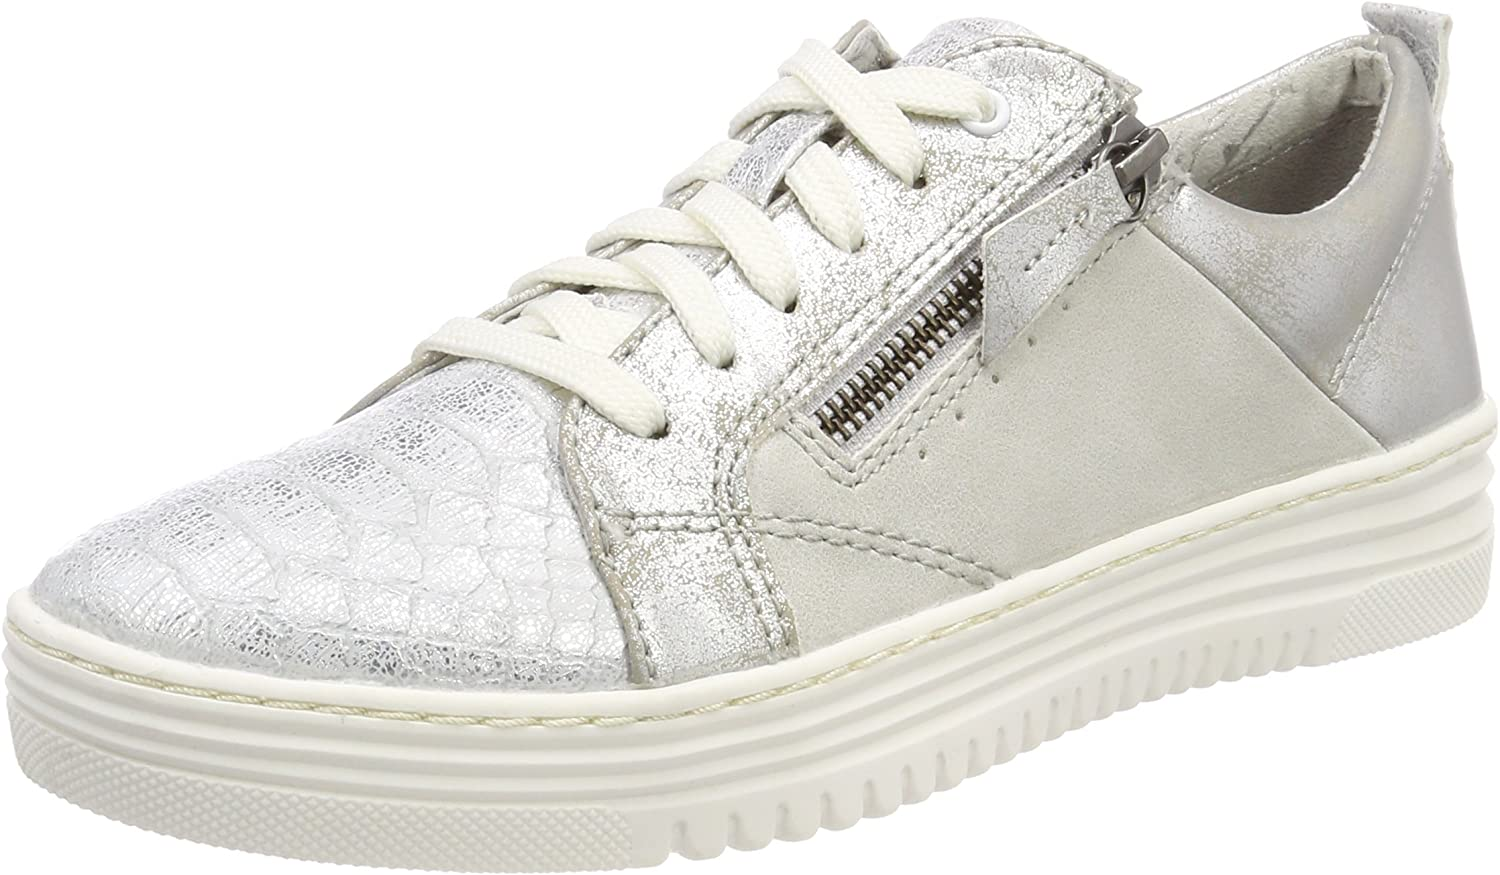 JANA Women's 23701 Low-Top Sneakers